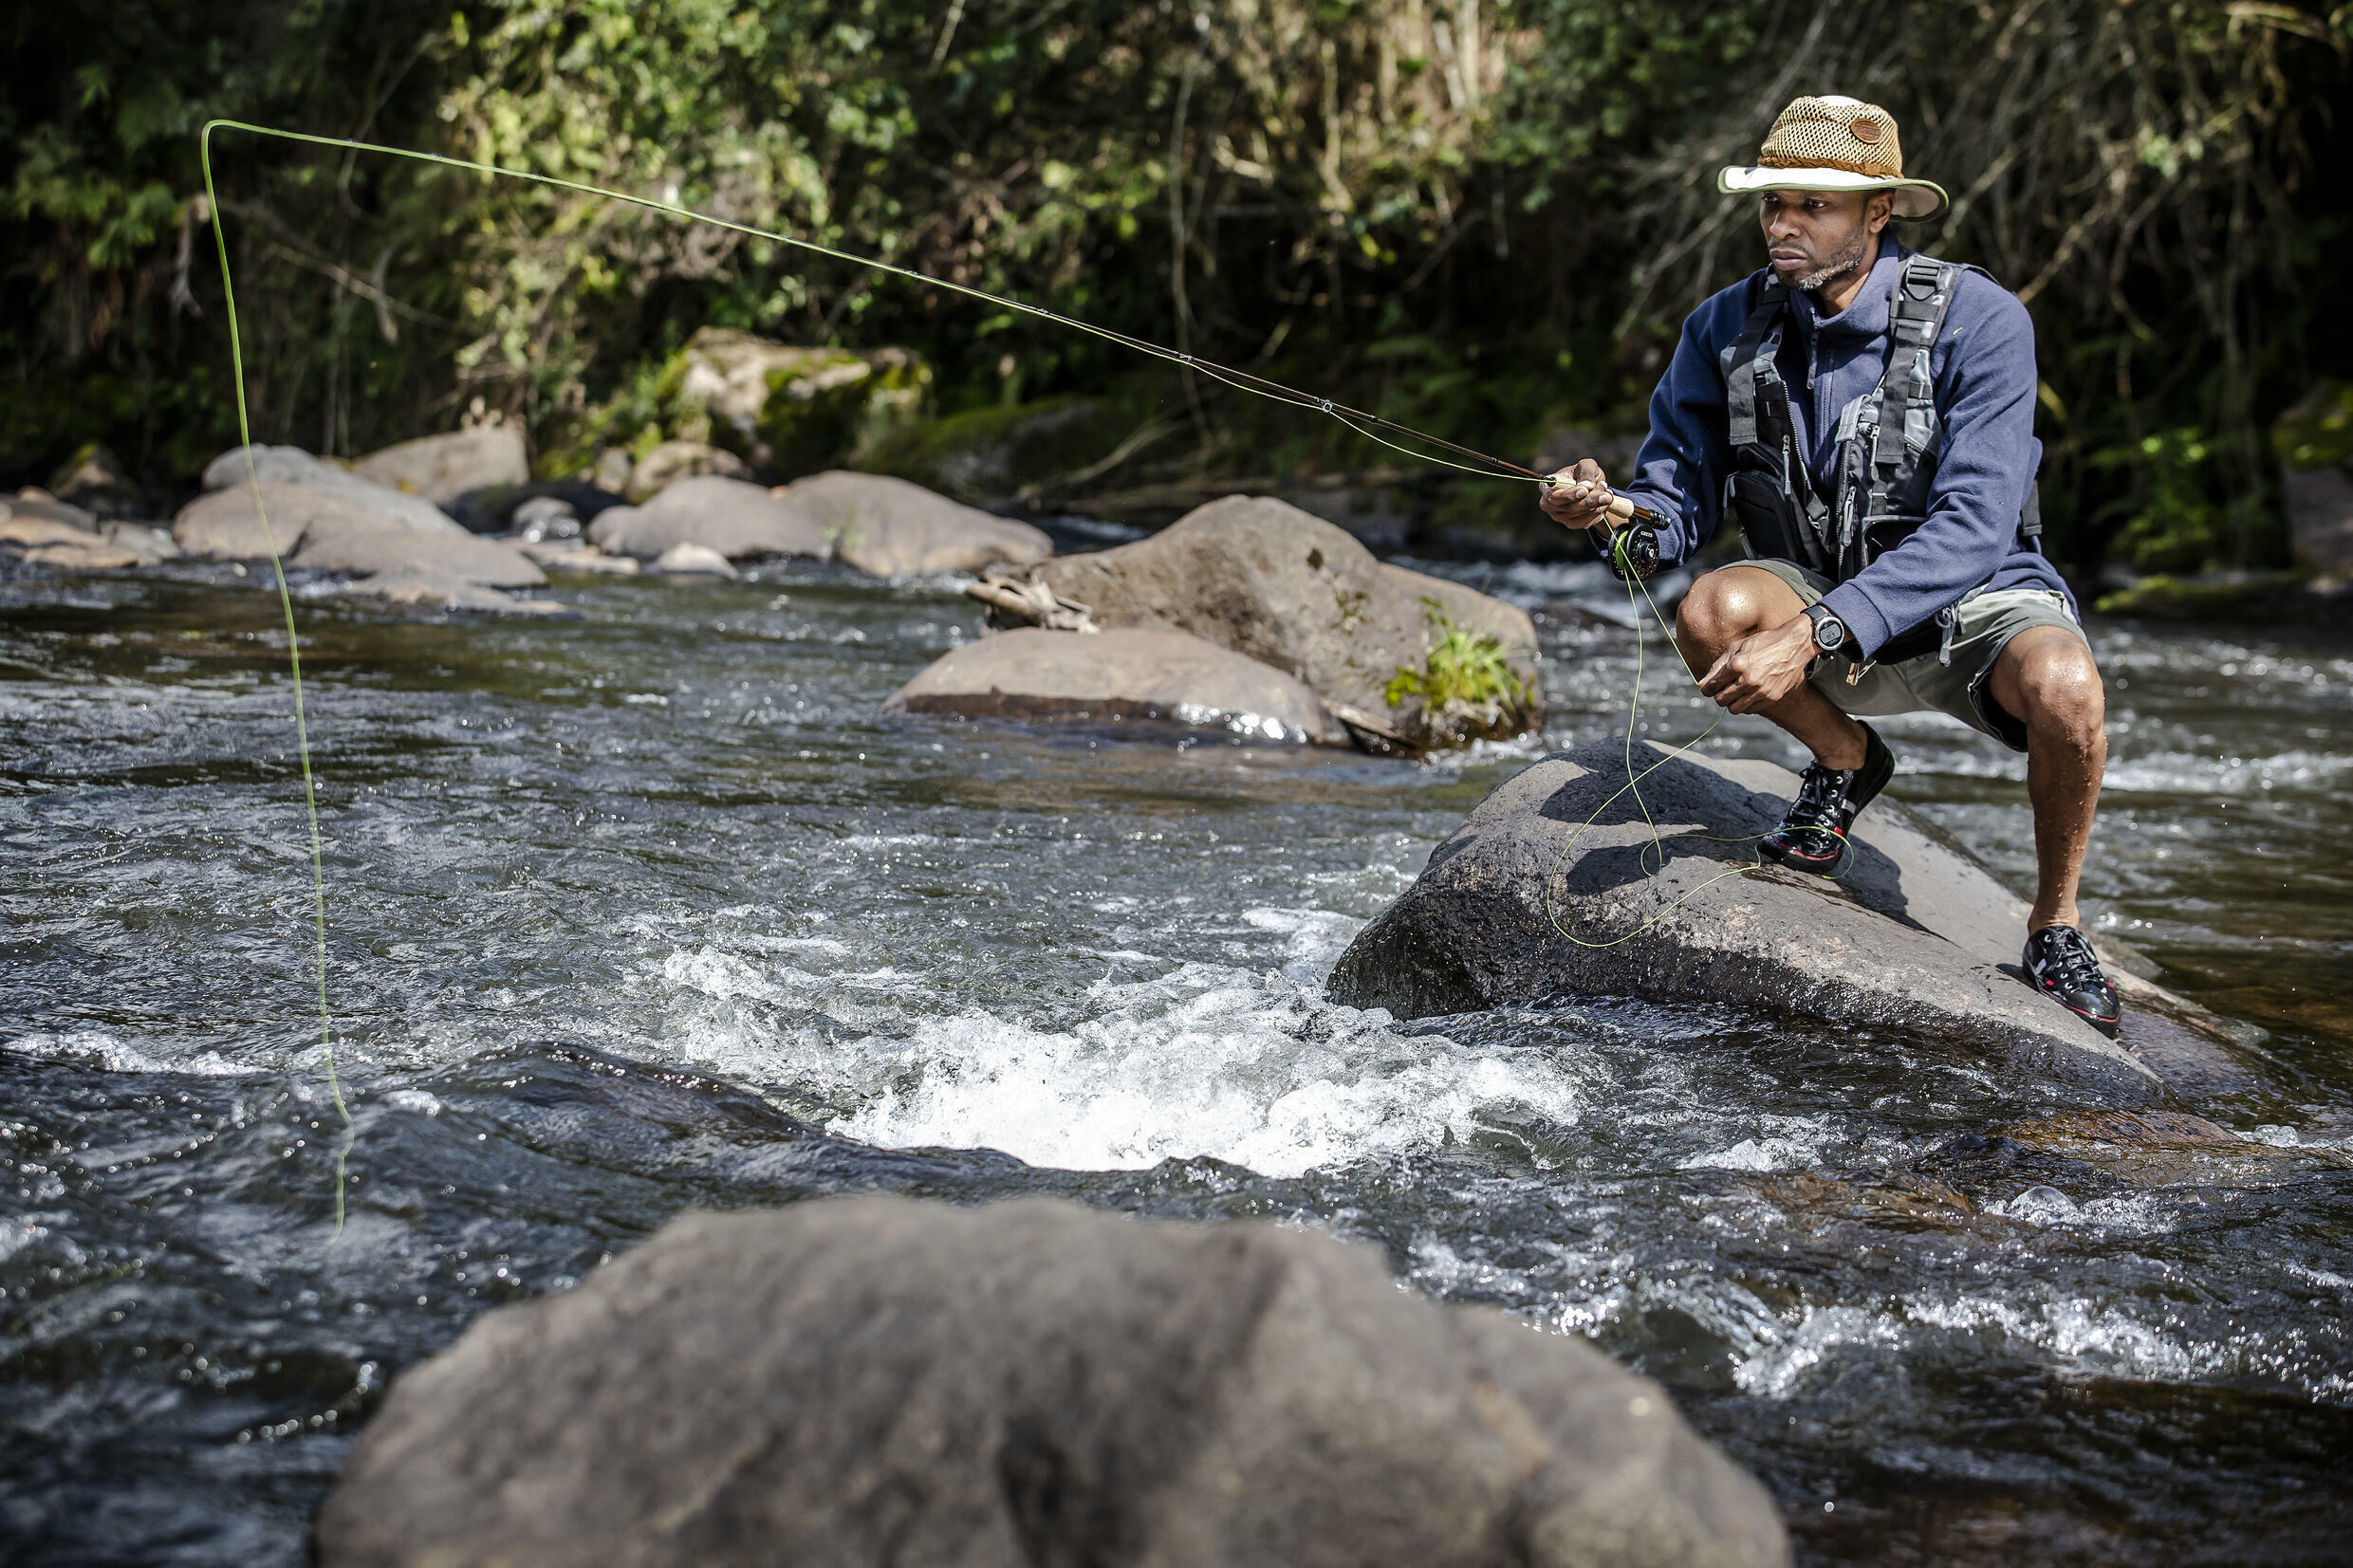 Kenya Fly Fishers' Club administrator Musa Ibrahim said there are now many local Kenyans fishing